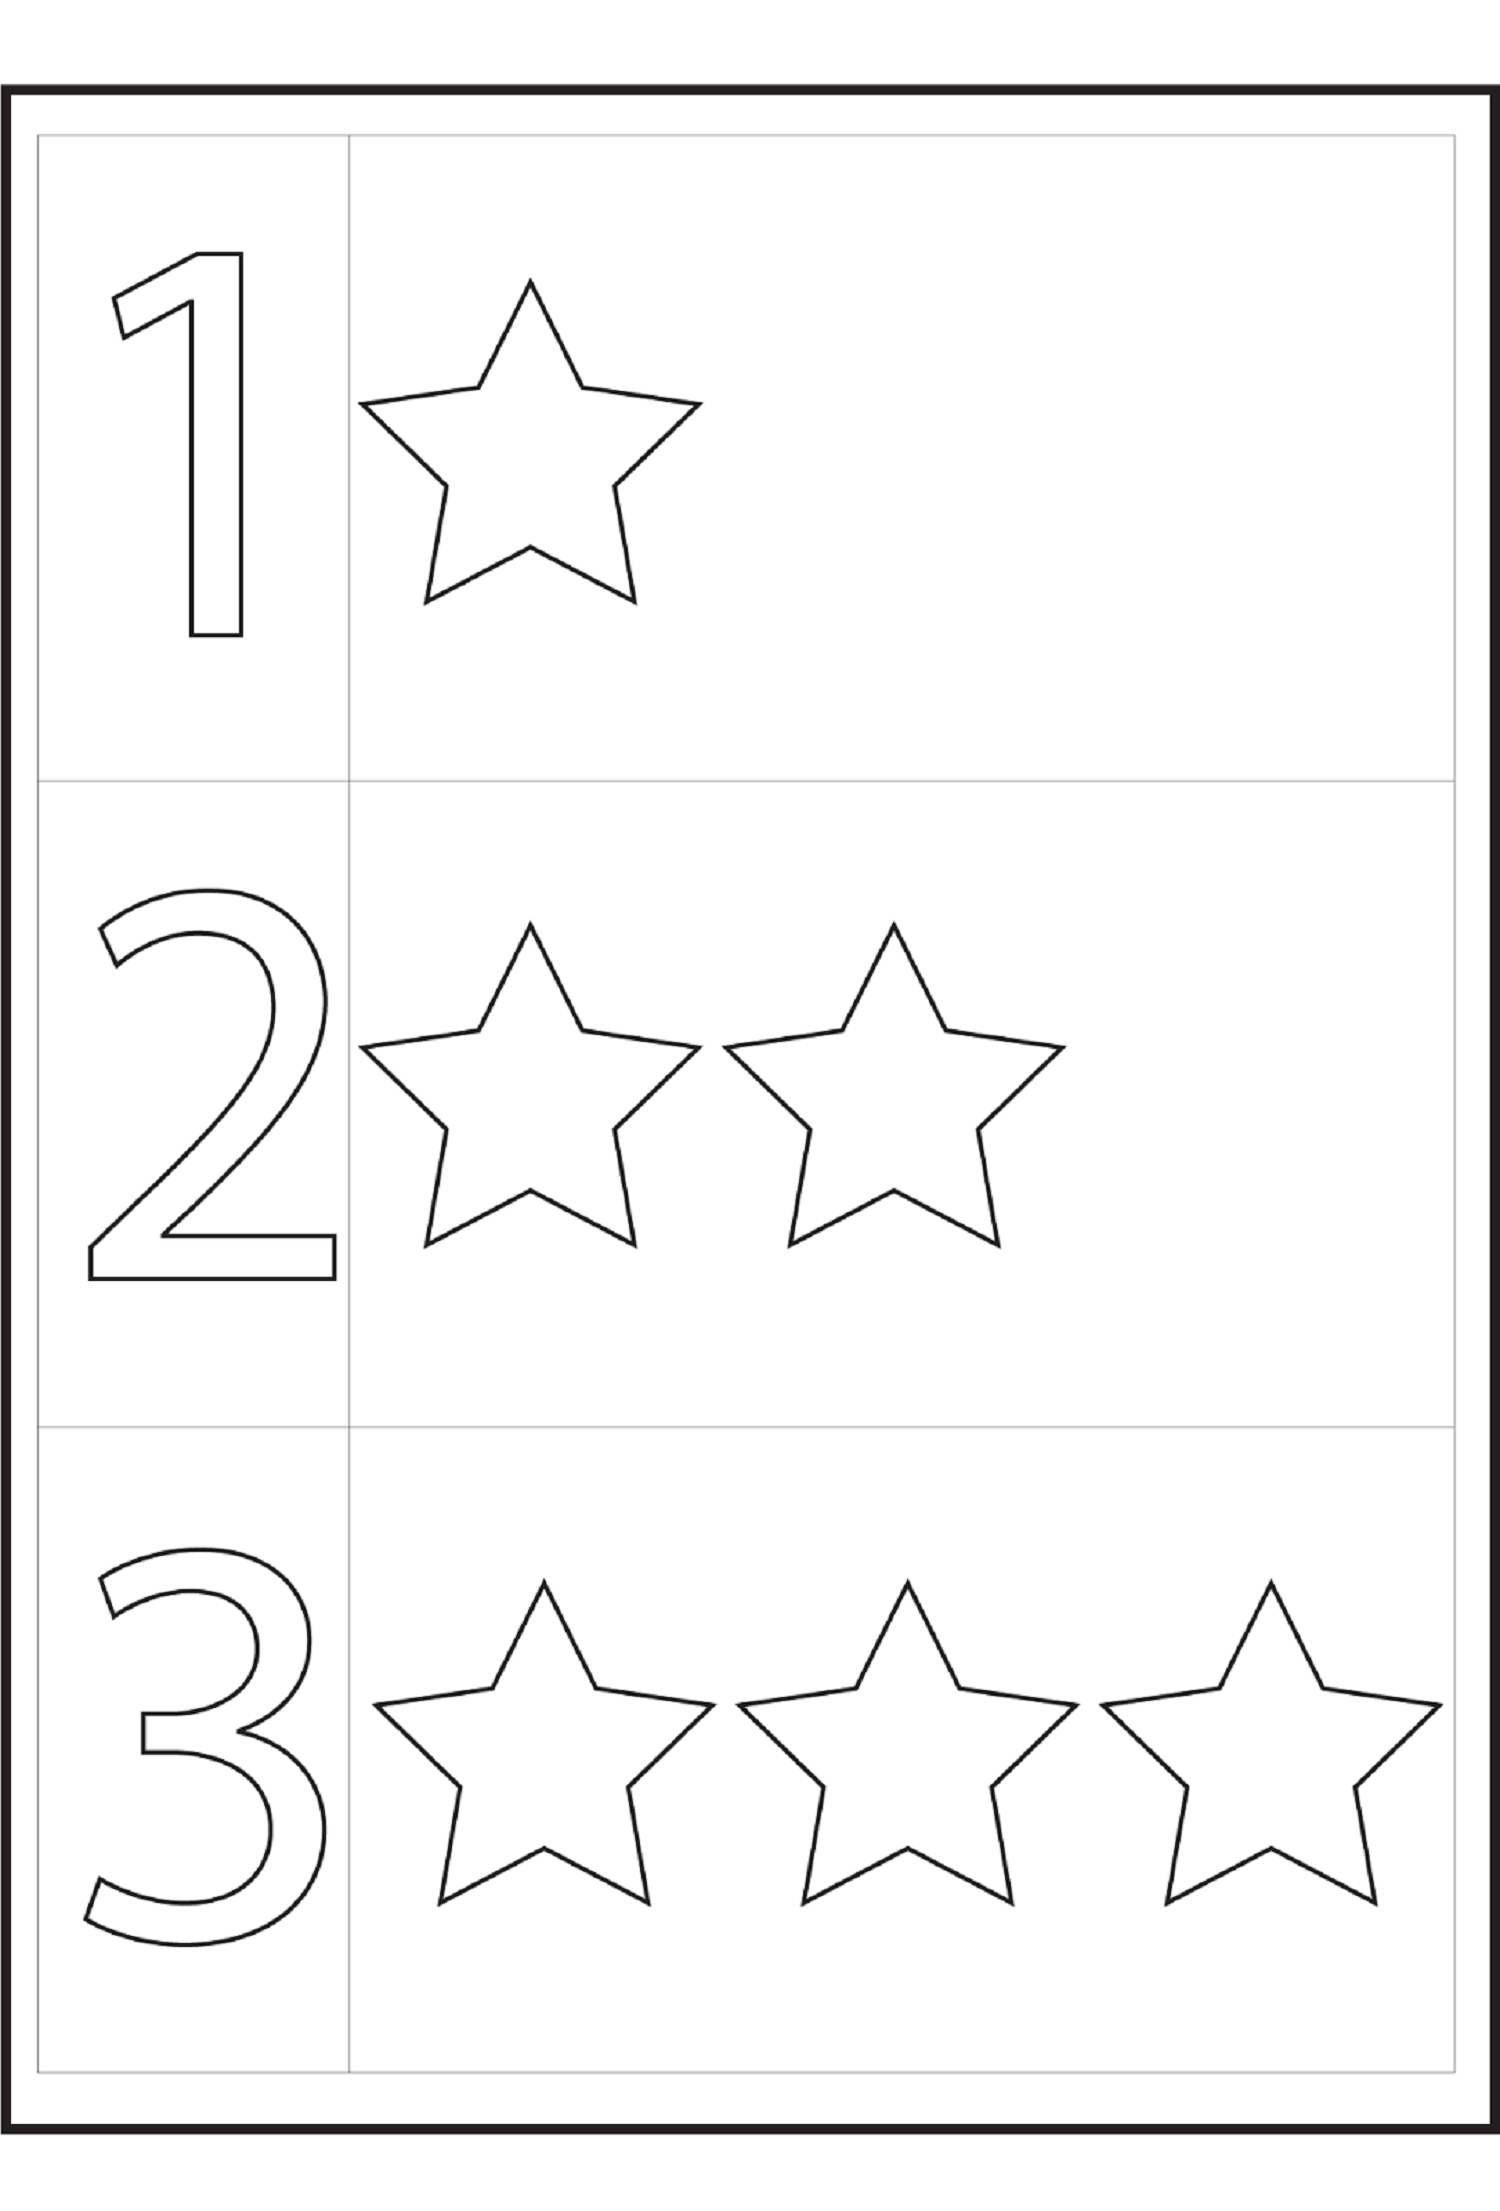 Tracing Numbers 1 5 For Easy Mathematics Project